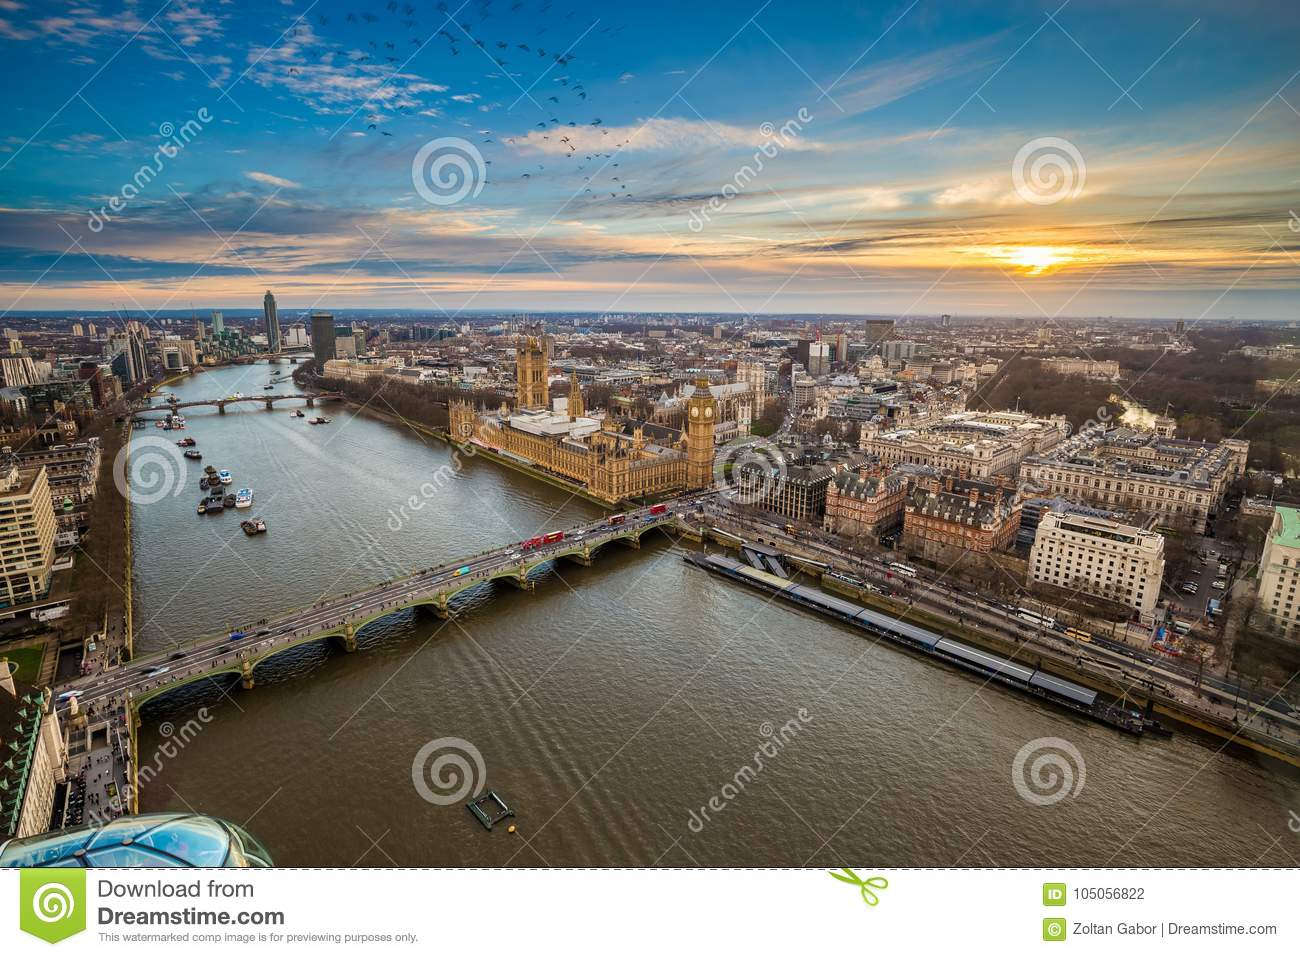 London, England - Aerial view of central London, with Big Ben, Houses of Parliament, Westminster Bridge